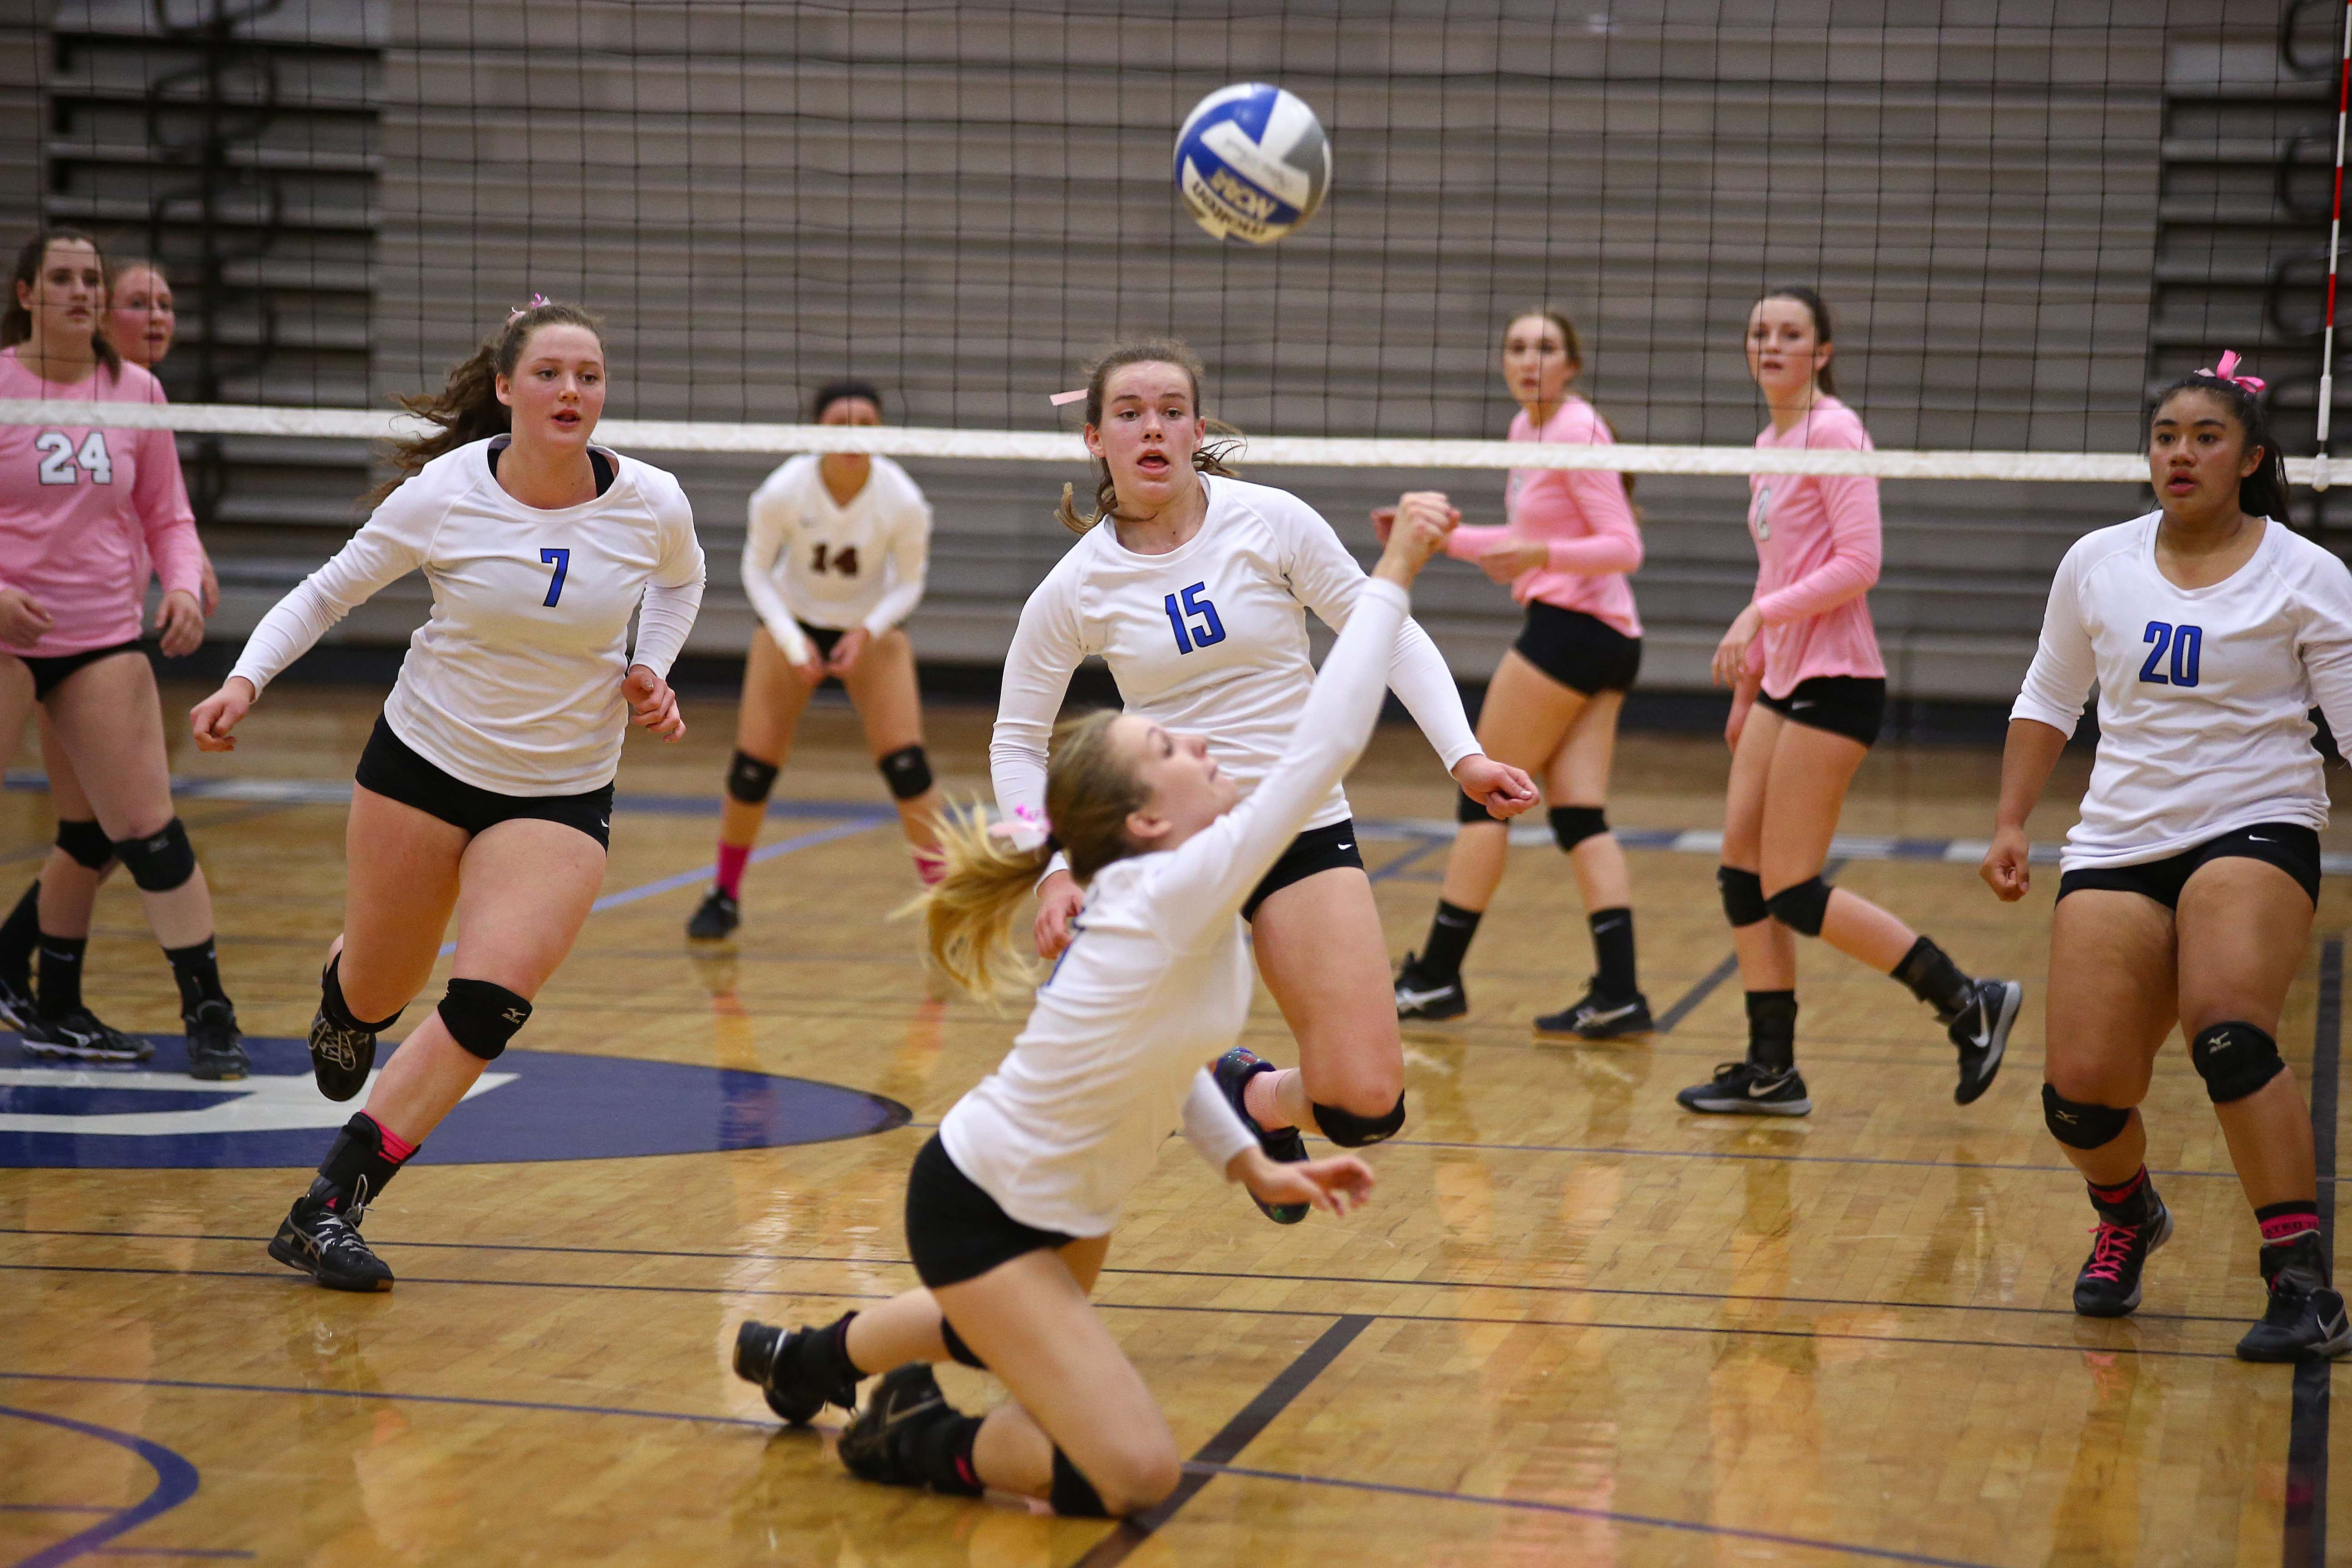 Dixie's Tyler Stilson (5), Dixie vs. Pine View, Volleyball, St. George, Utah, Oct. 11, 2016,   Photo by Robert Hoppie, ASPpix.com, St. George News